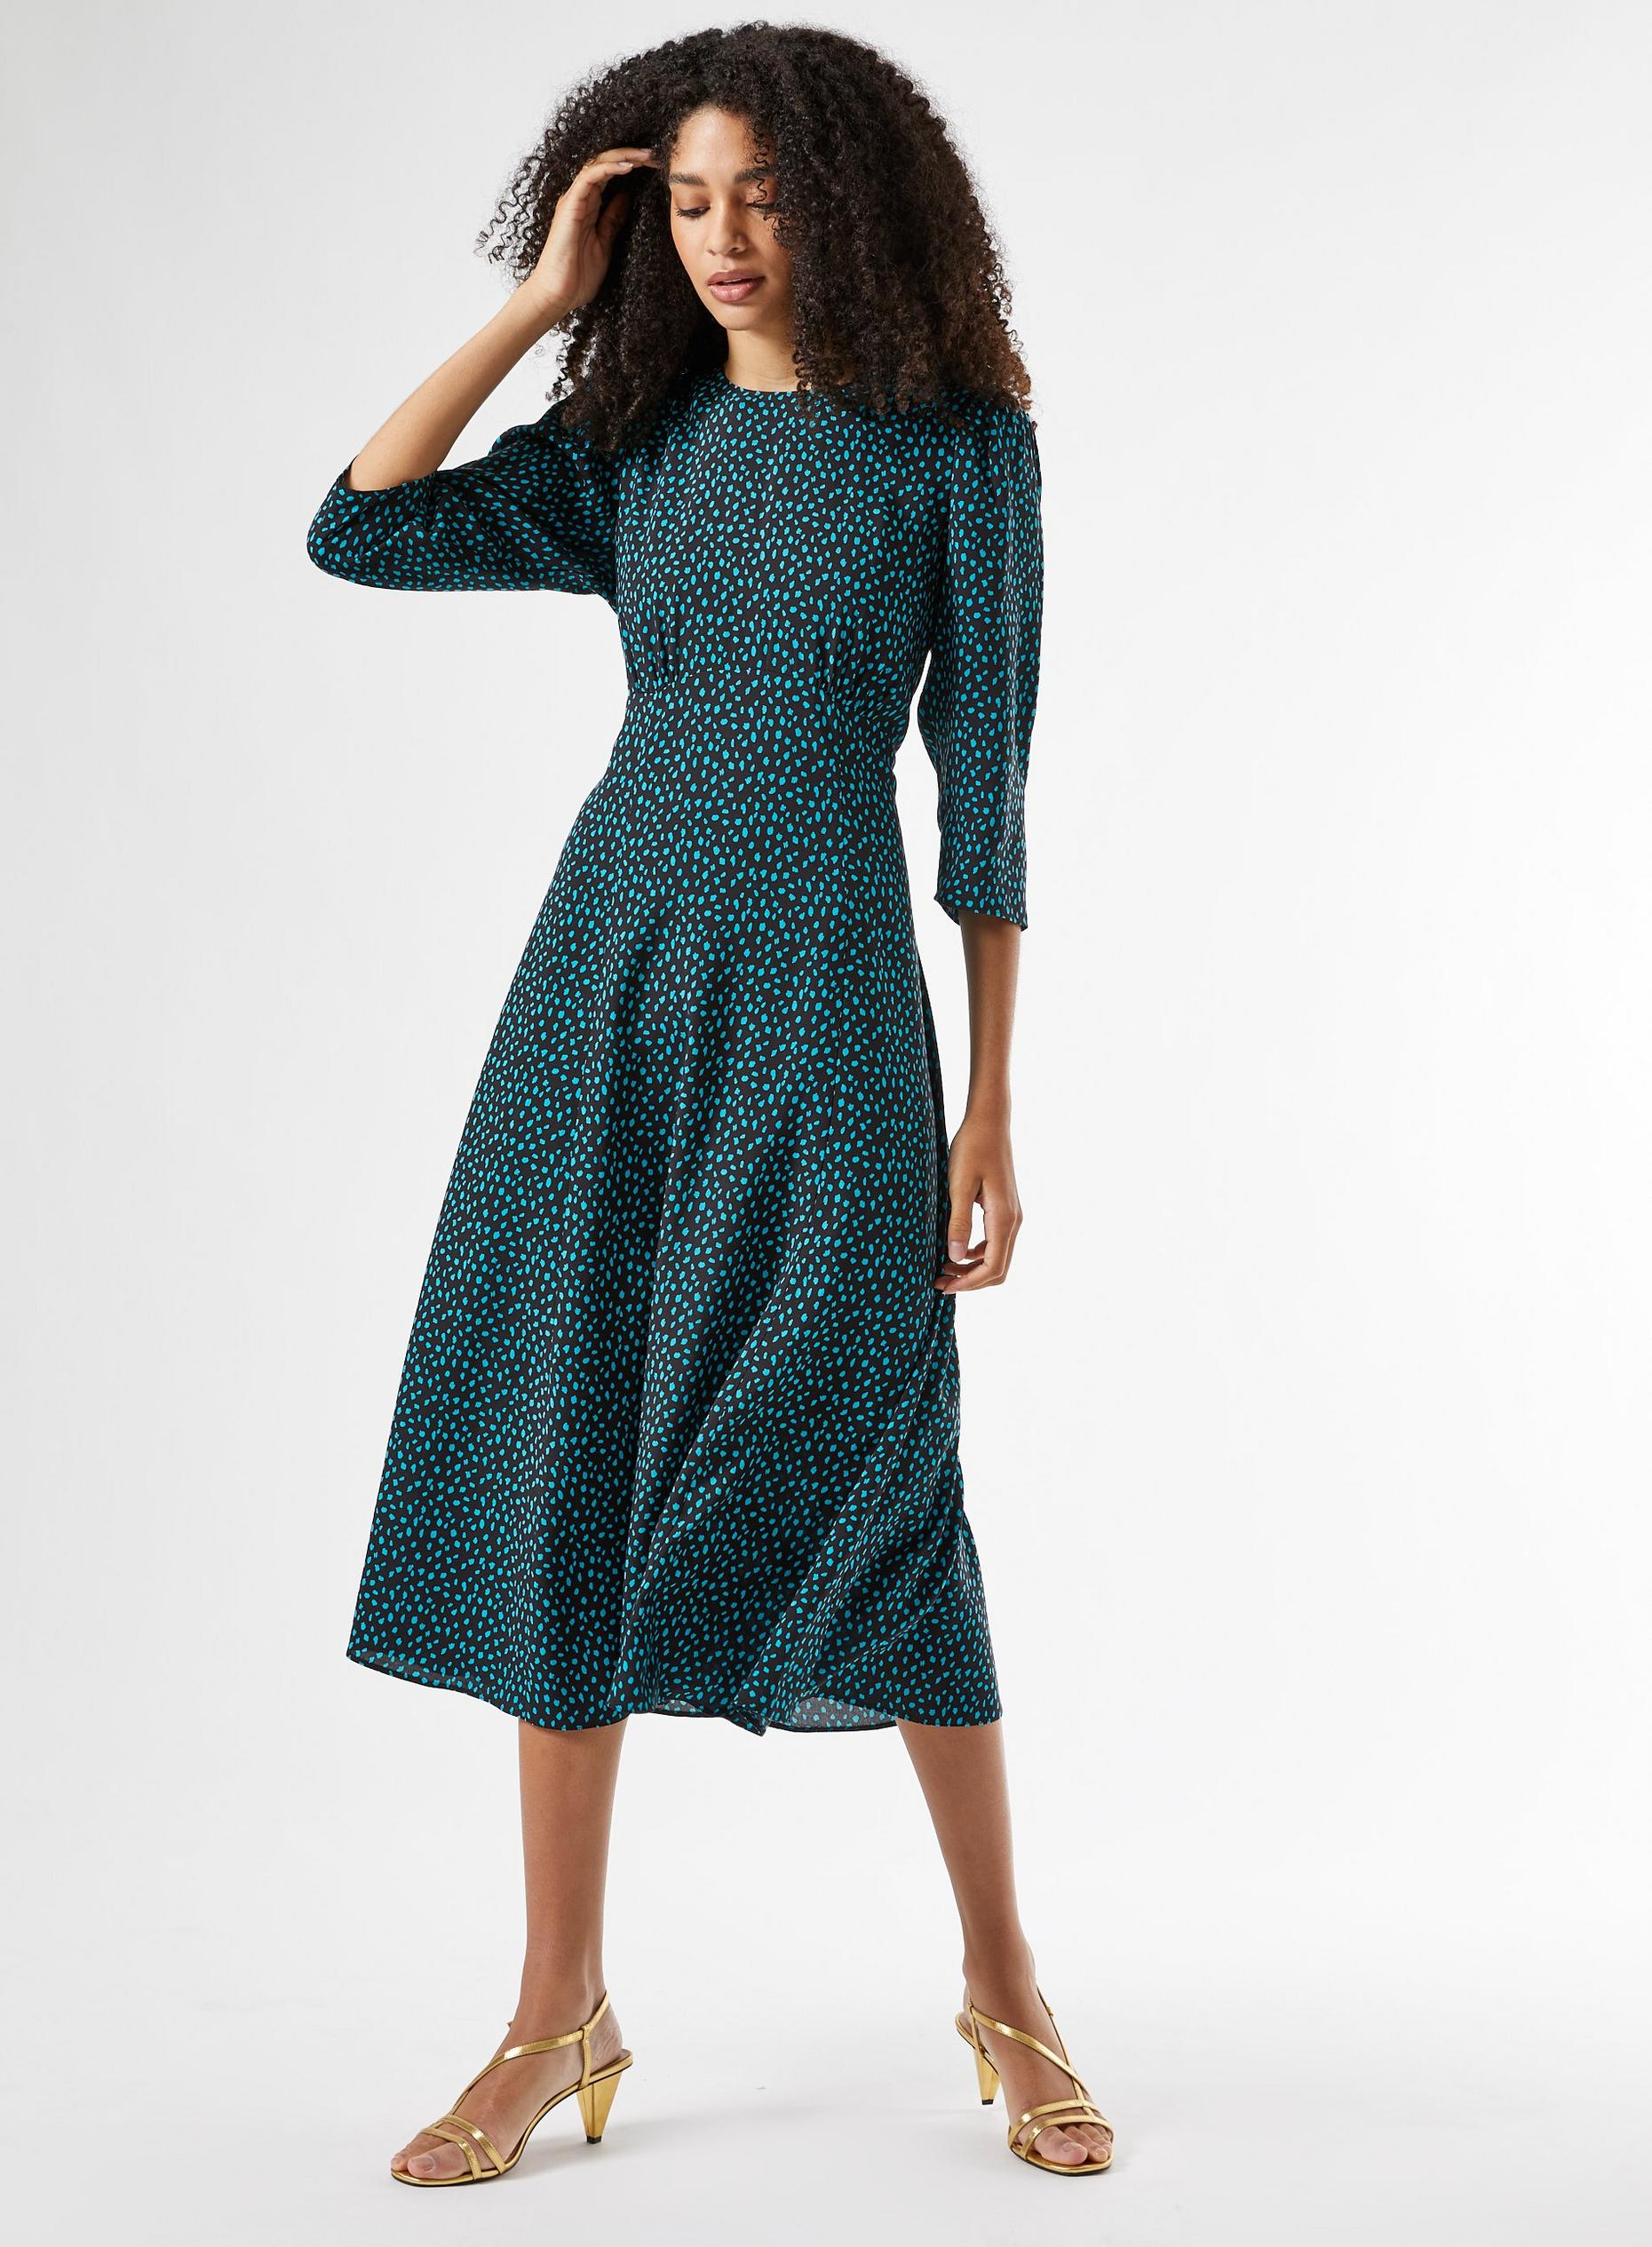 Green Spot Empire Midi Dress